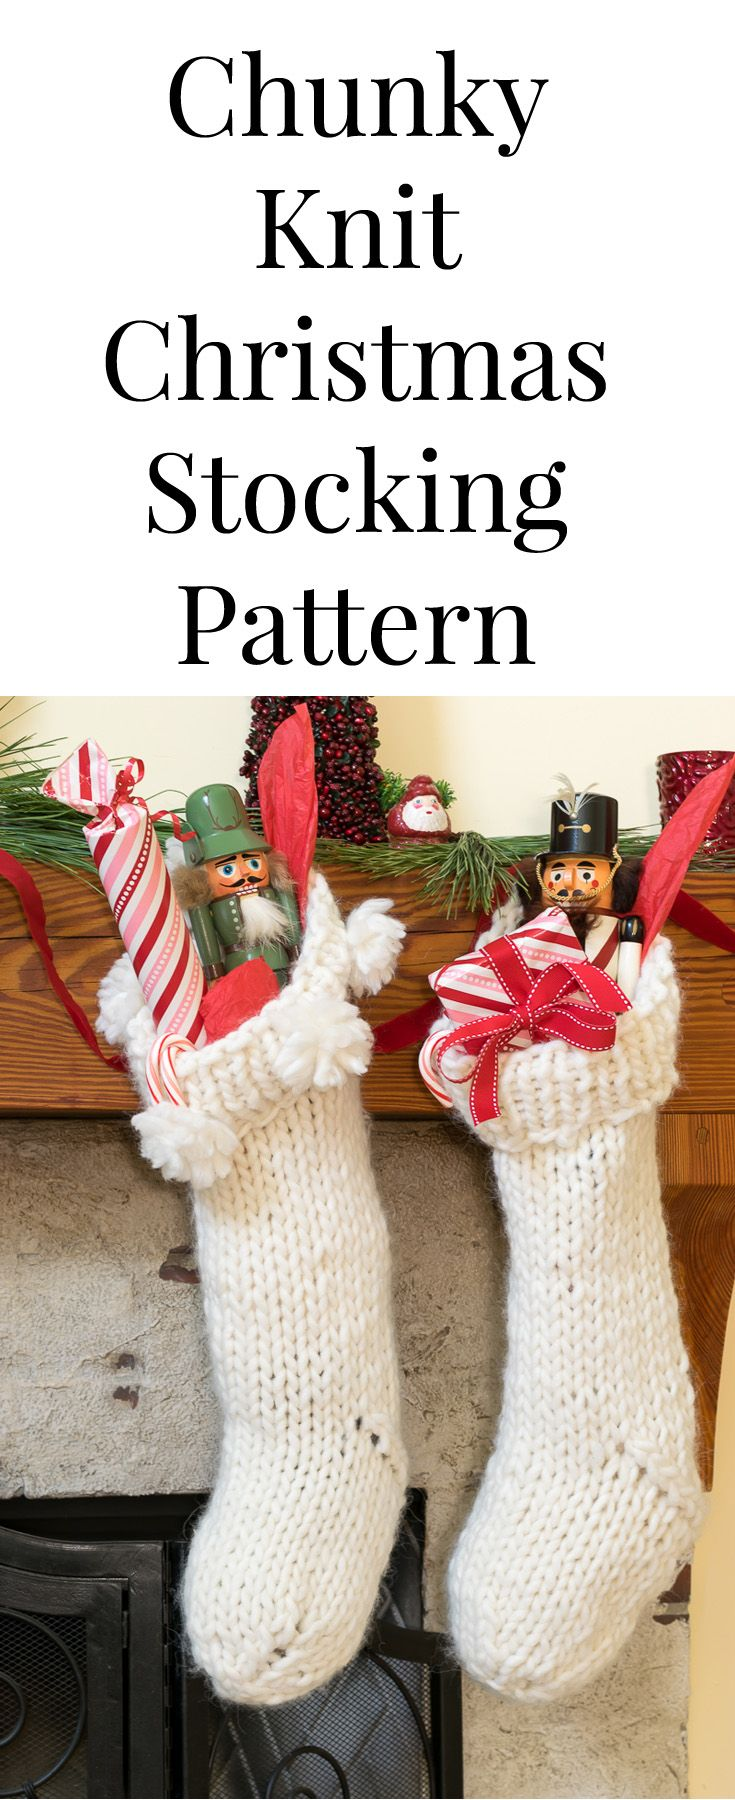 Chunky Knit Christmas Stocking Pattern Knitted Christmas Stocking Patterns Christmas Stocking Pattern Christmas